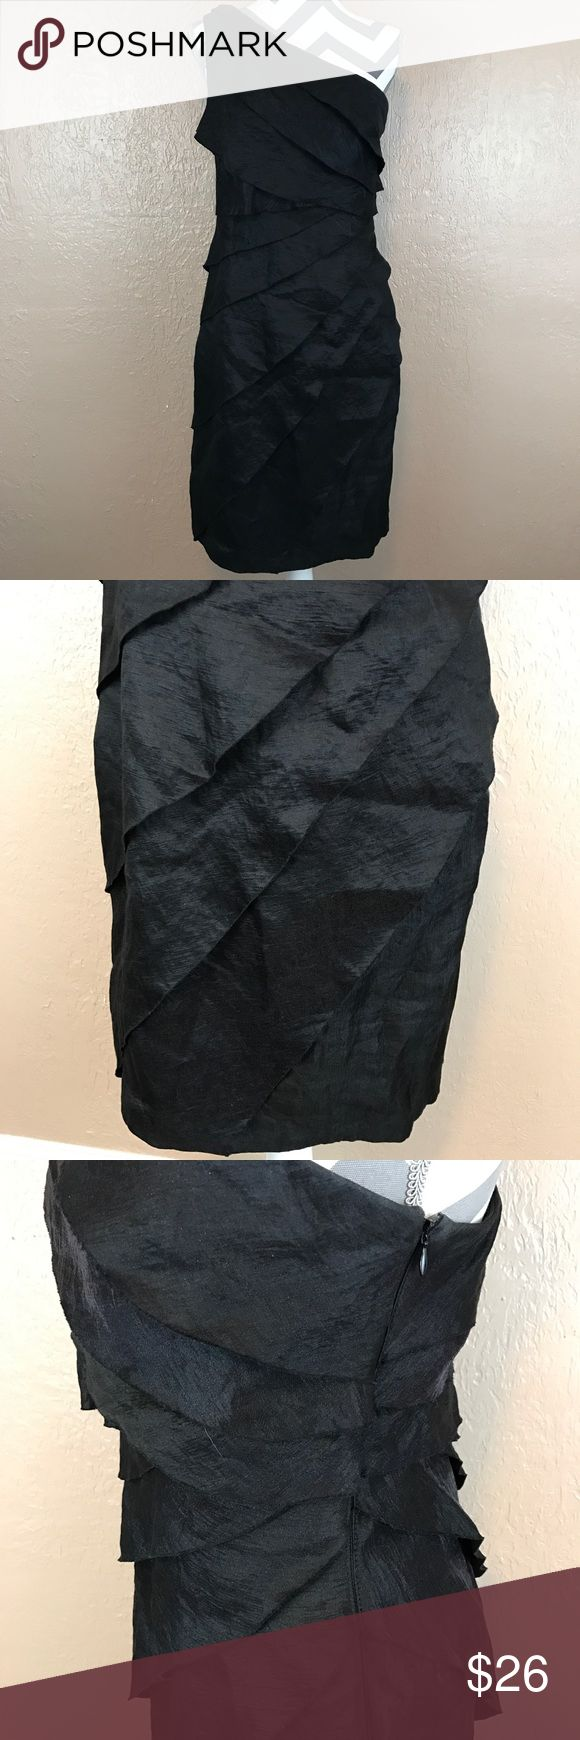 London Times Black One Shoulder Dress Beautiful dress in excellent condition. Rayon Blend. Side zip. Lined. Women's 14. Smoke free home. Ships next day! ❤️ accepting offers and bundle discounts ❤️ London Times Dresses One Shoulder